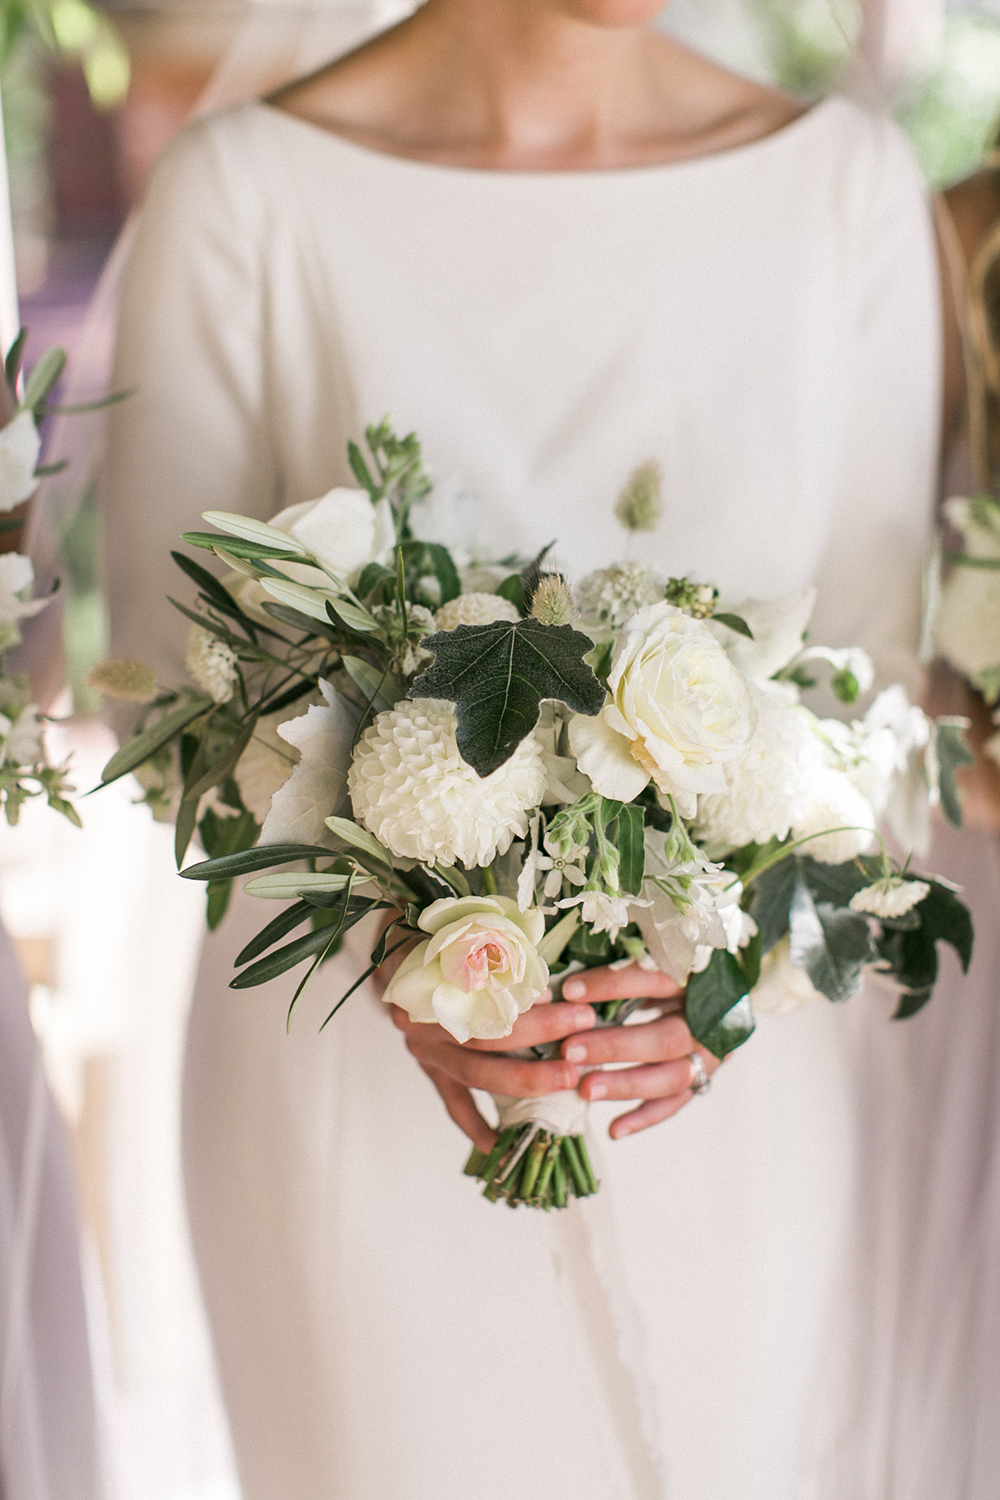 Seattle Bride, Seattle wedding, PNW wedding, PNW bride, wedding inspiration, Washington bride, Washington wedding, wedding dress, wedding photography, wedding photos, wedding decor, wedding reception, wedding bouquet, bridal bouquet, wedding flowers, wedding florals, bridal florals